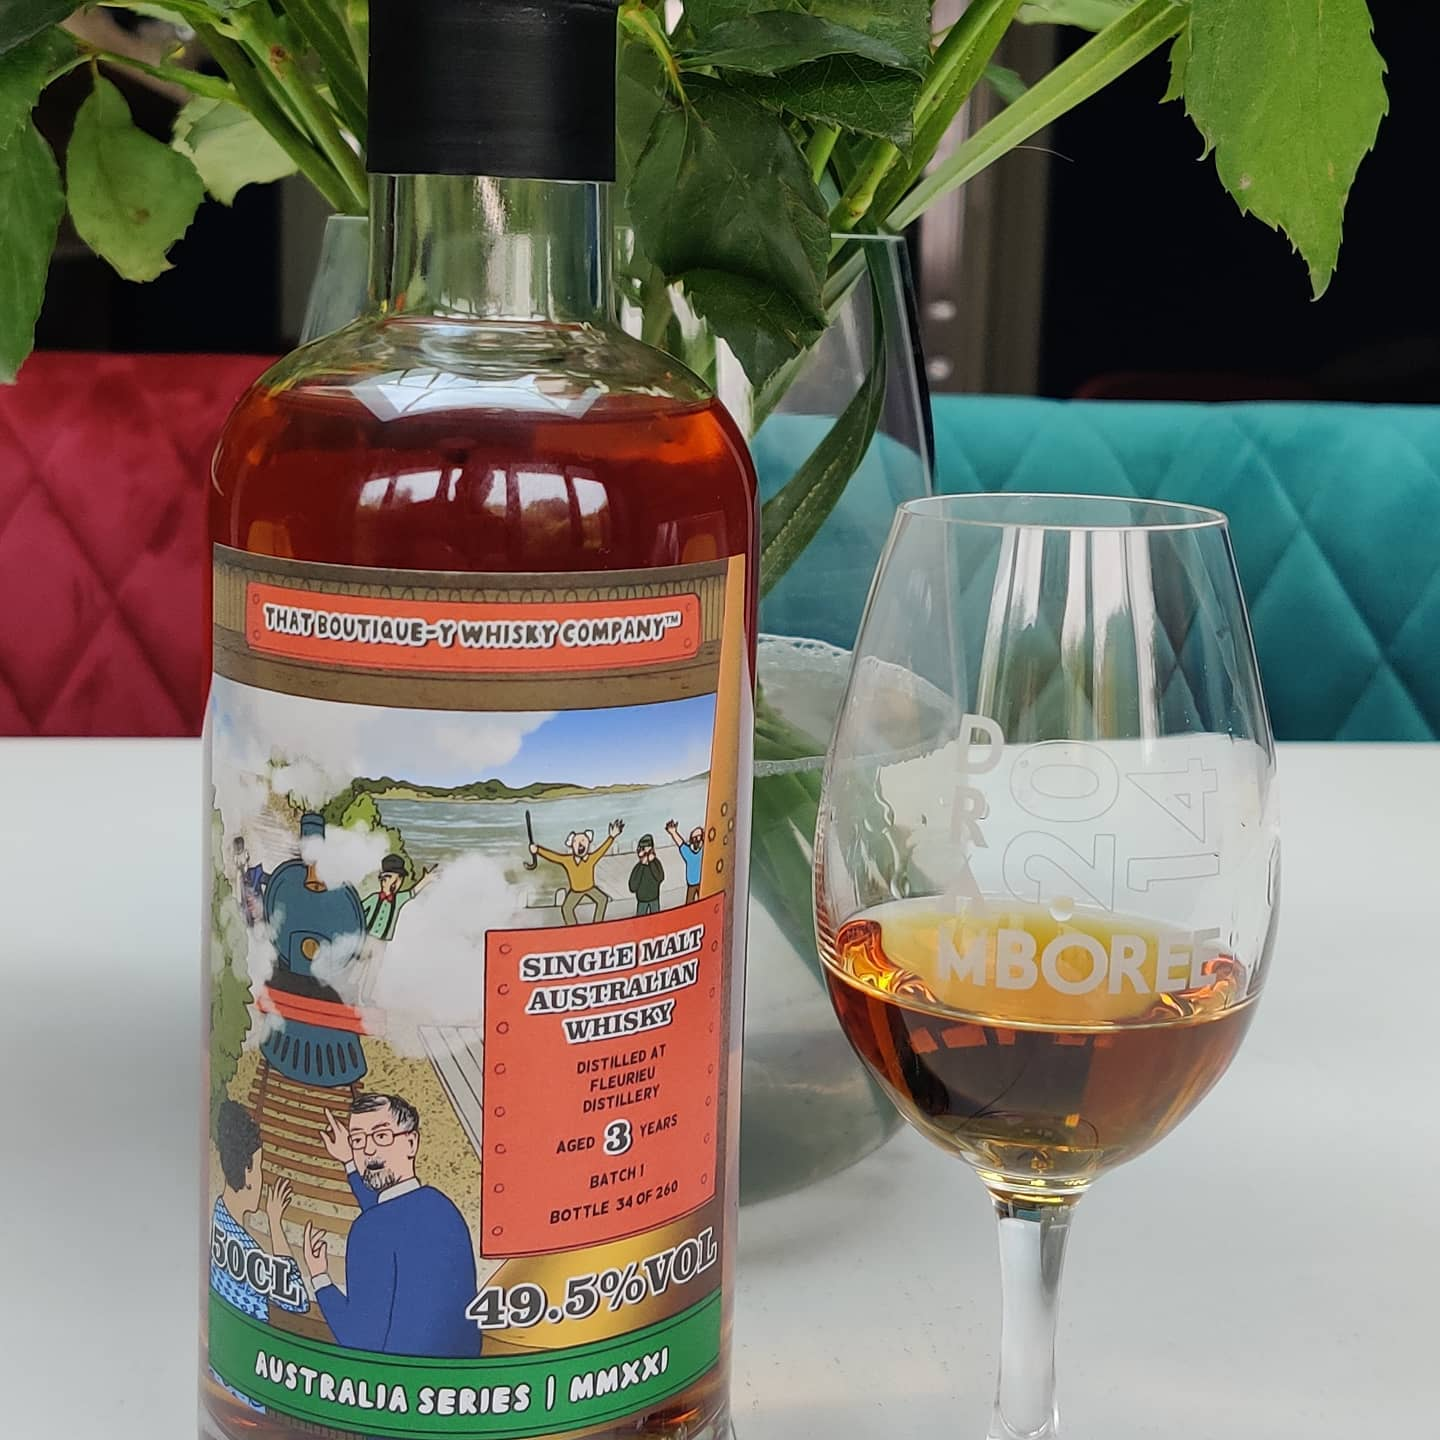 Acting on a tip-off from @vividscreen I made sure I snapped up this @boutiqueywhisky bottle from @fleurieudistillery - and I'm delighted to be able to say IT'S DELICIOUS! What a treat to be able to try a single malt whisky made an hour's drive from where I grew up.